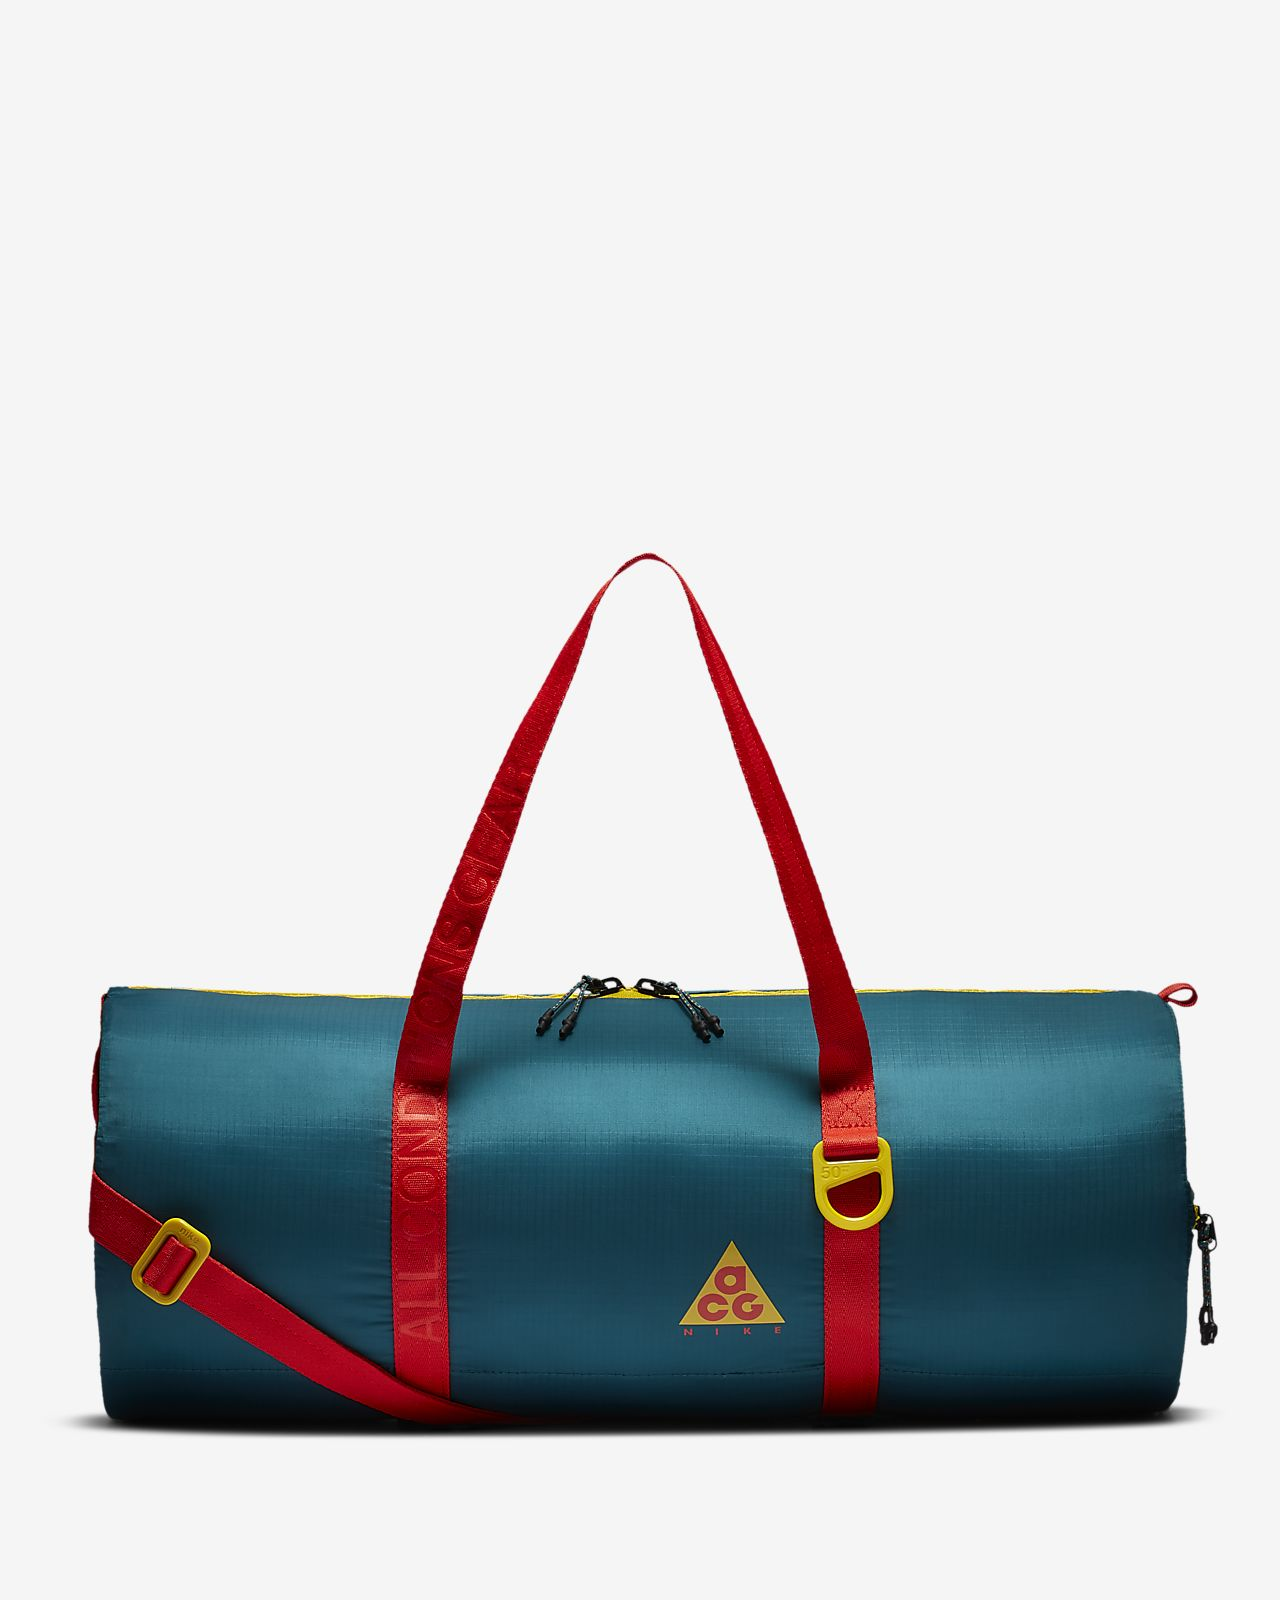 info for 66615 f8ff7 ... Nike ACG Packable Duffel Bag